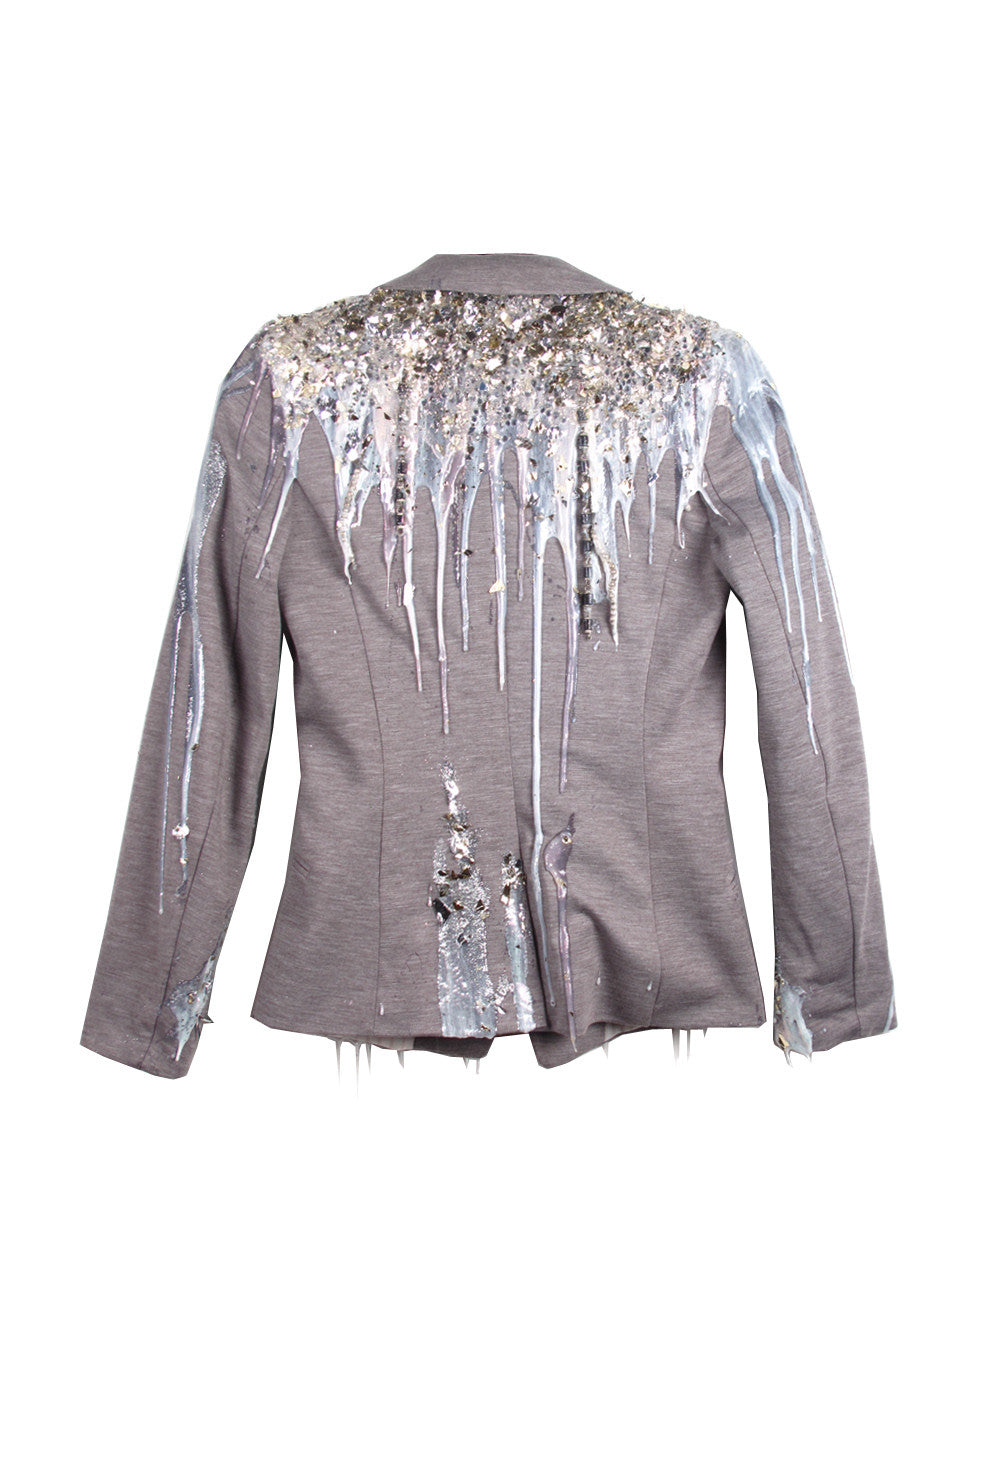 SSIK ONE OF A KIND Silicon Metallic Foil Blazer - AVAILABLE FOR  IMMEDIATE DELIVERY SIZE S